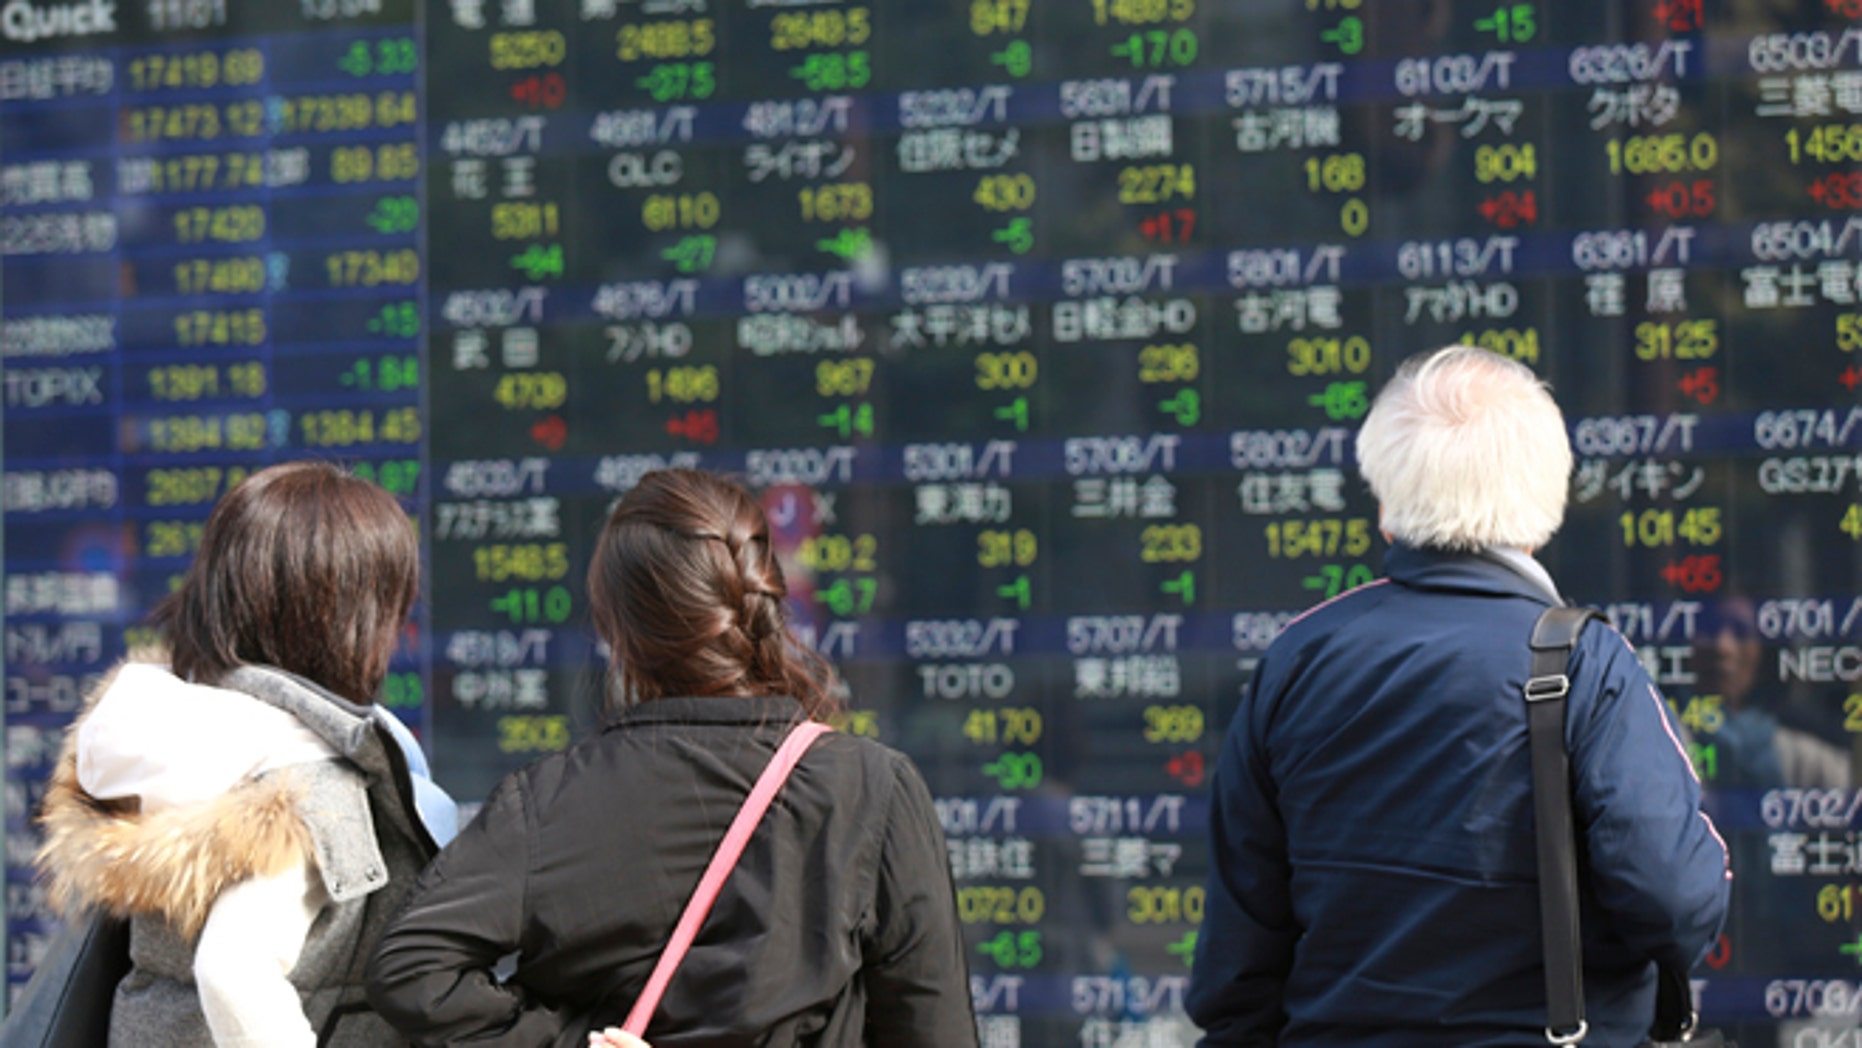 Pedestrian look at an electronic stock board of a securities firm in Tokyo, Tuesday, Nov. 1, 2016. Stocks indexes in Asia were mostly higher Tuesday after surveys showed China's factory activity rose to a two-year high last month, suggesting the world's No. 2 economy is stabilizing. (AP Photo/Eugene Hoshiko)